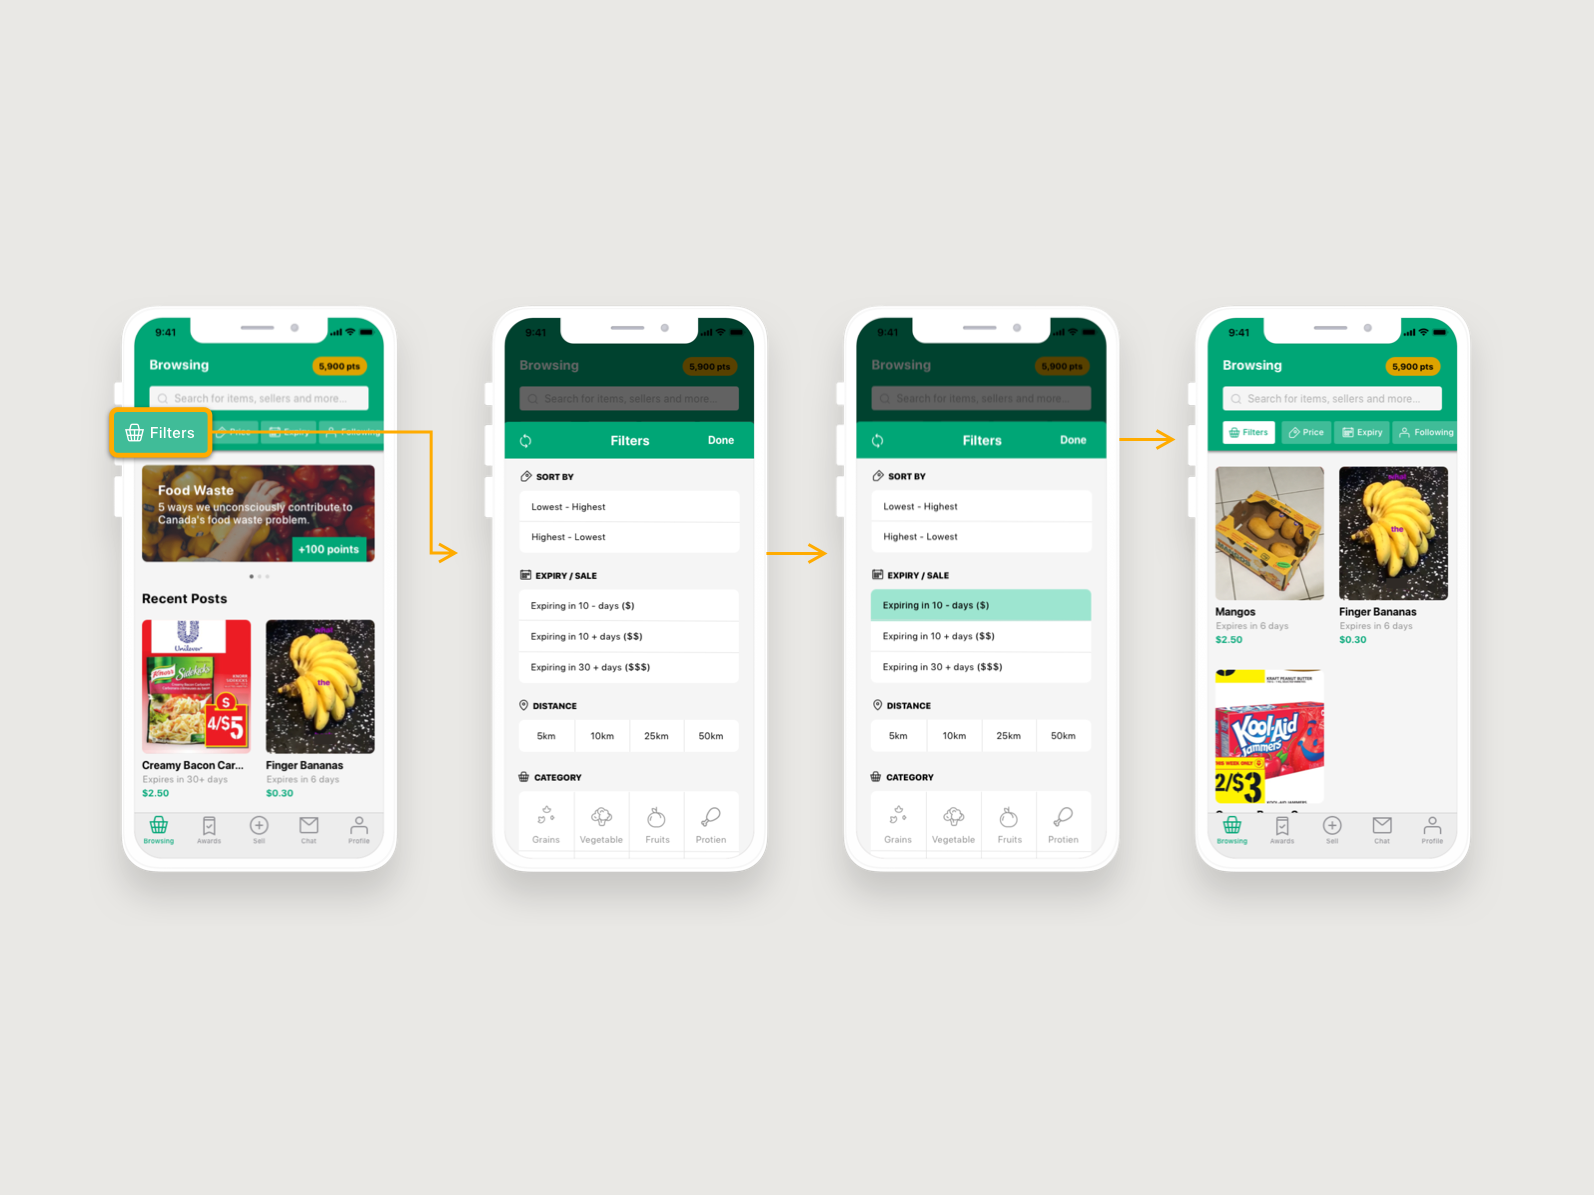 Food Waste ui ux interaction flow food waste user experience user interface